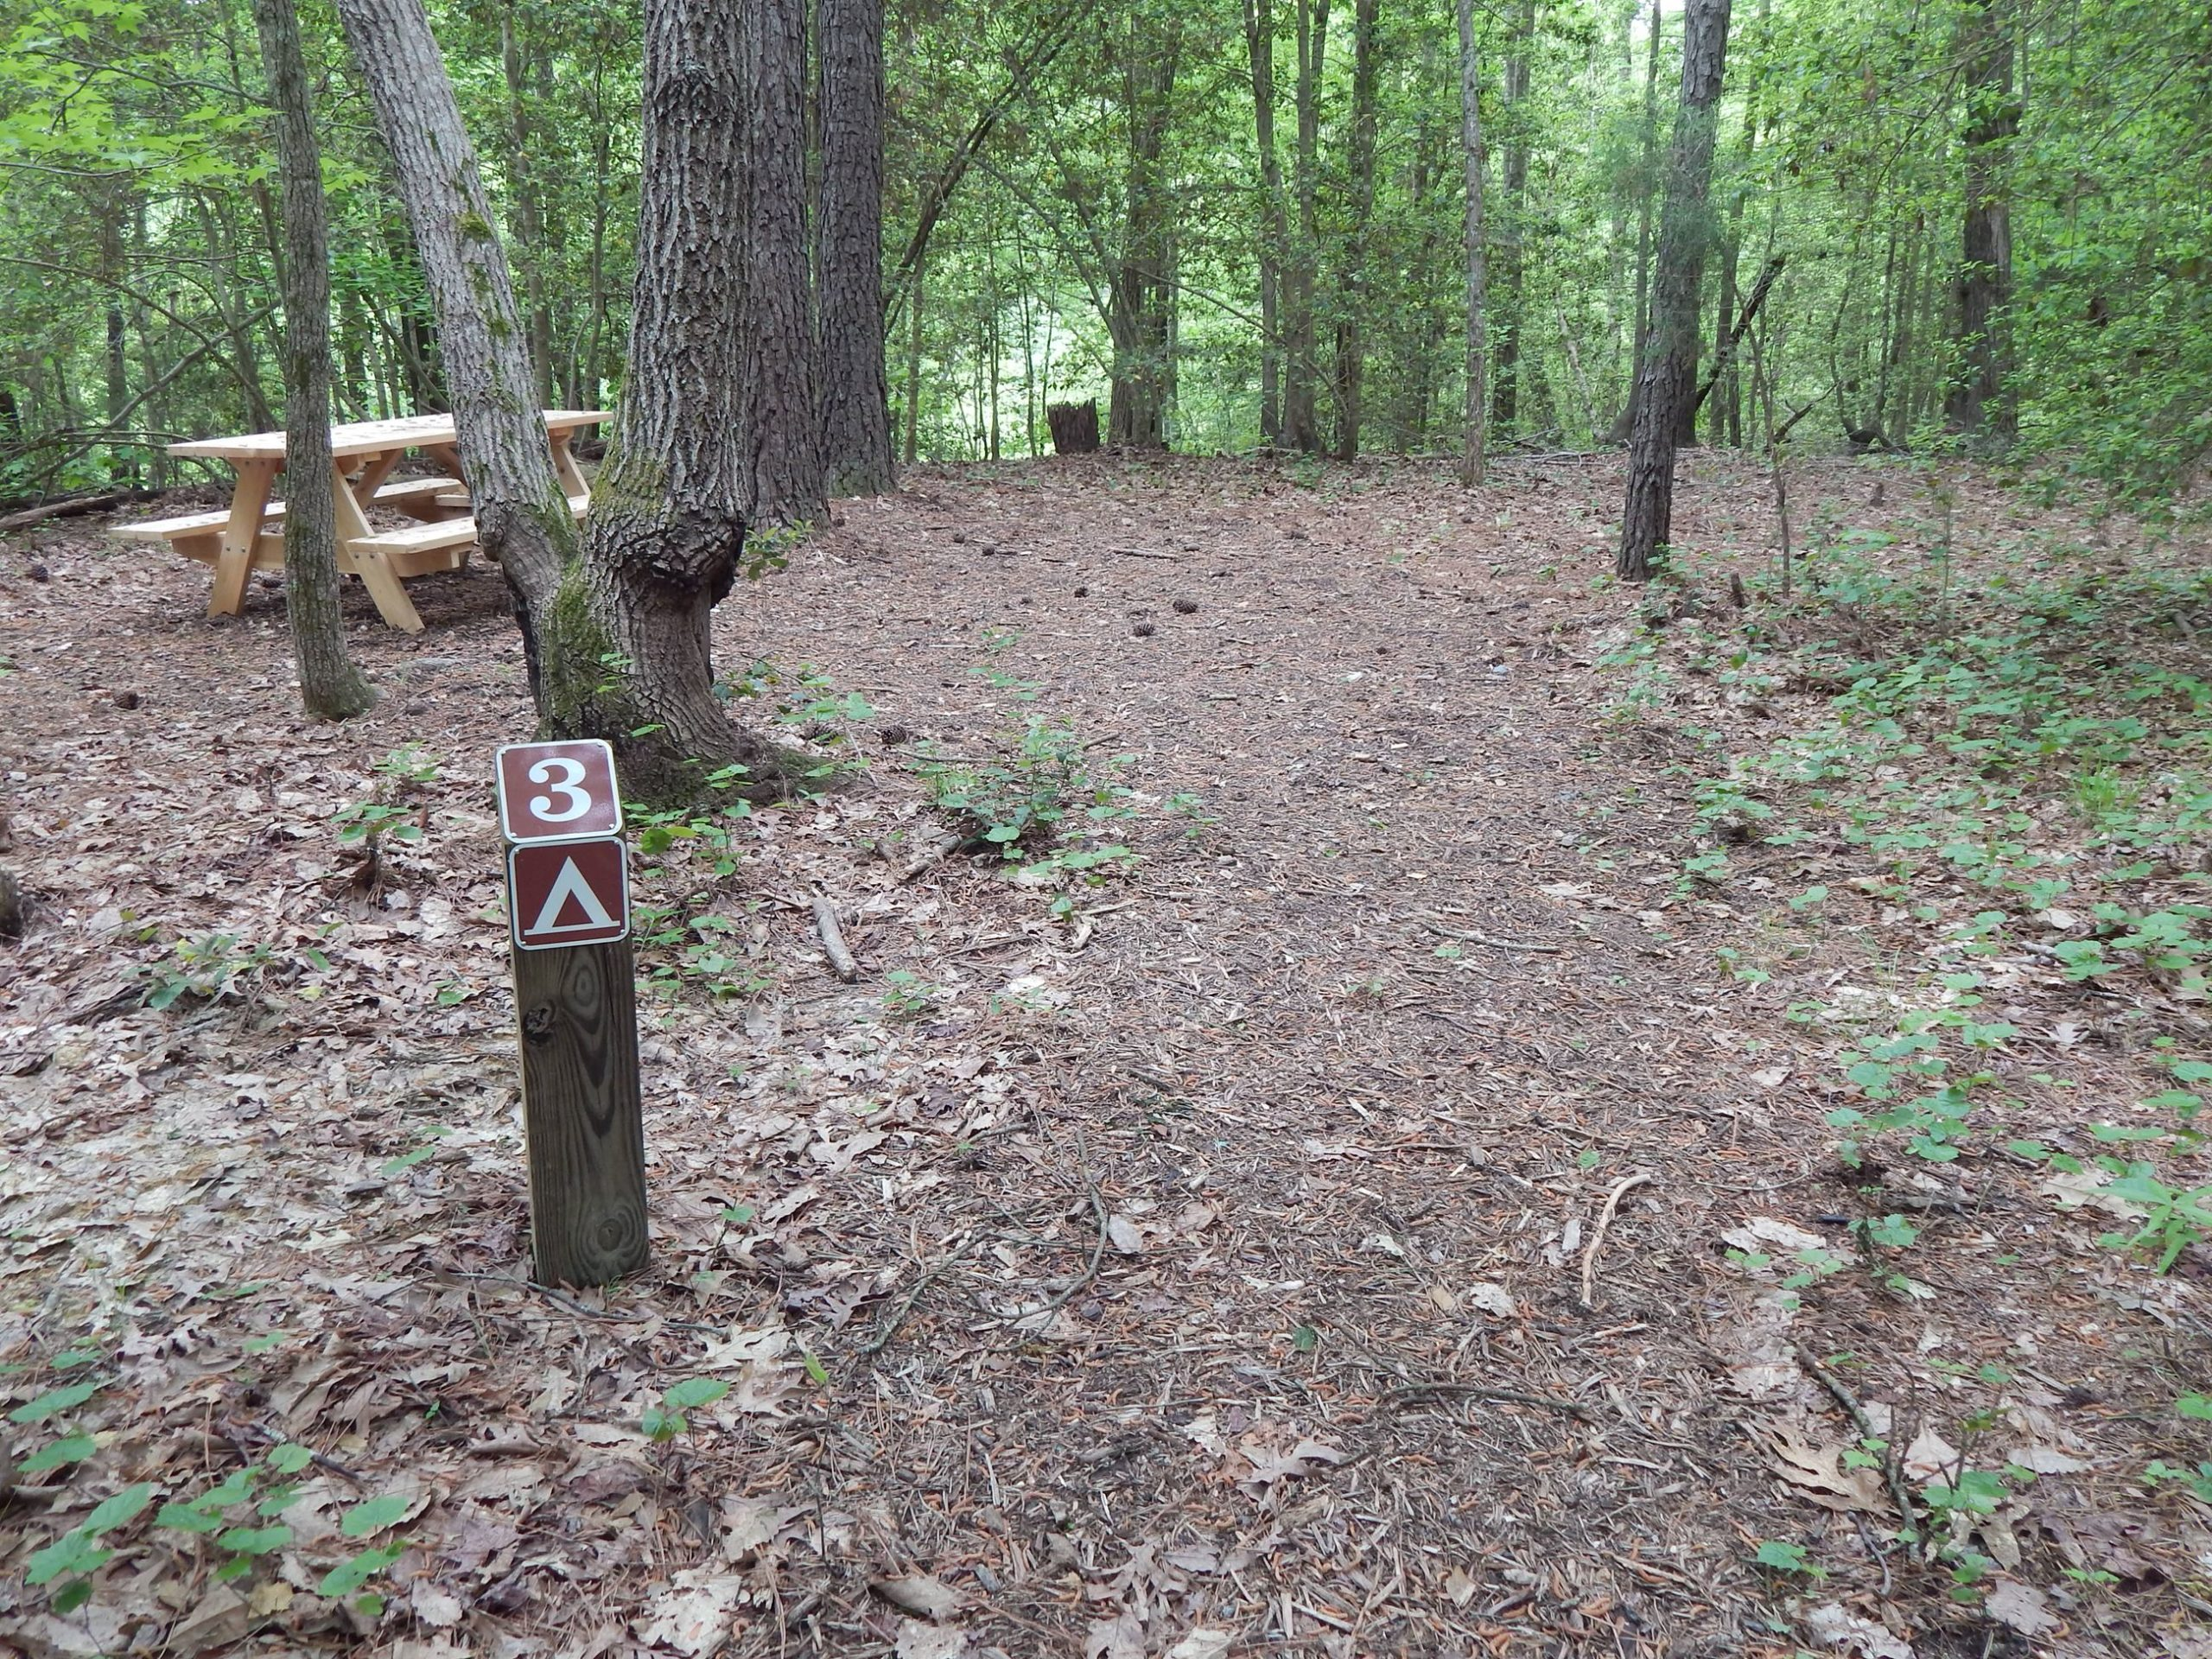 Charles City Co. Opens Public Camping Area at Lawrence Lewis Jr. Park